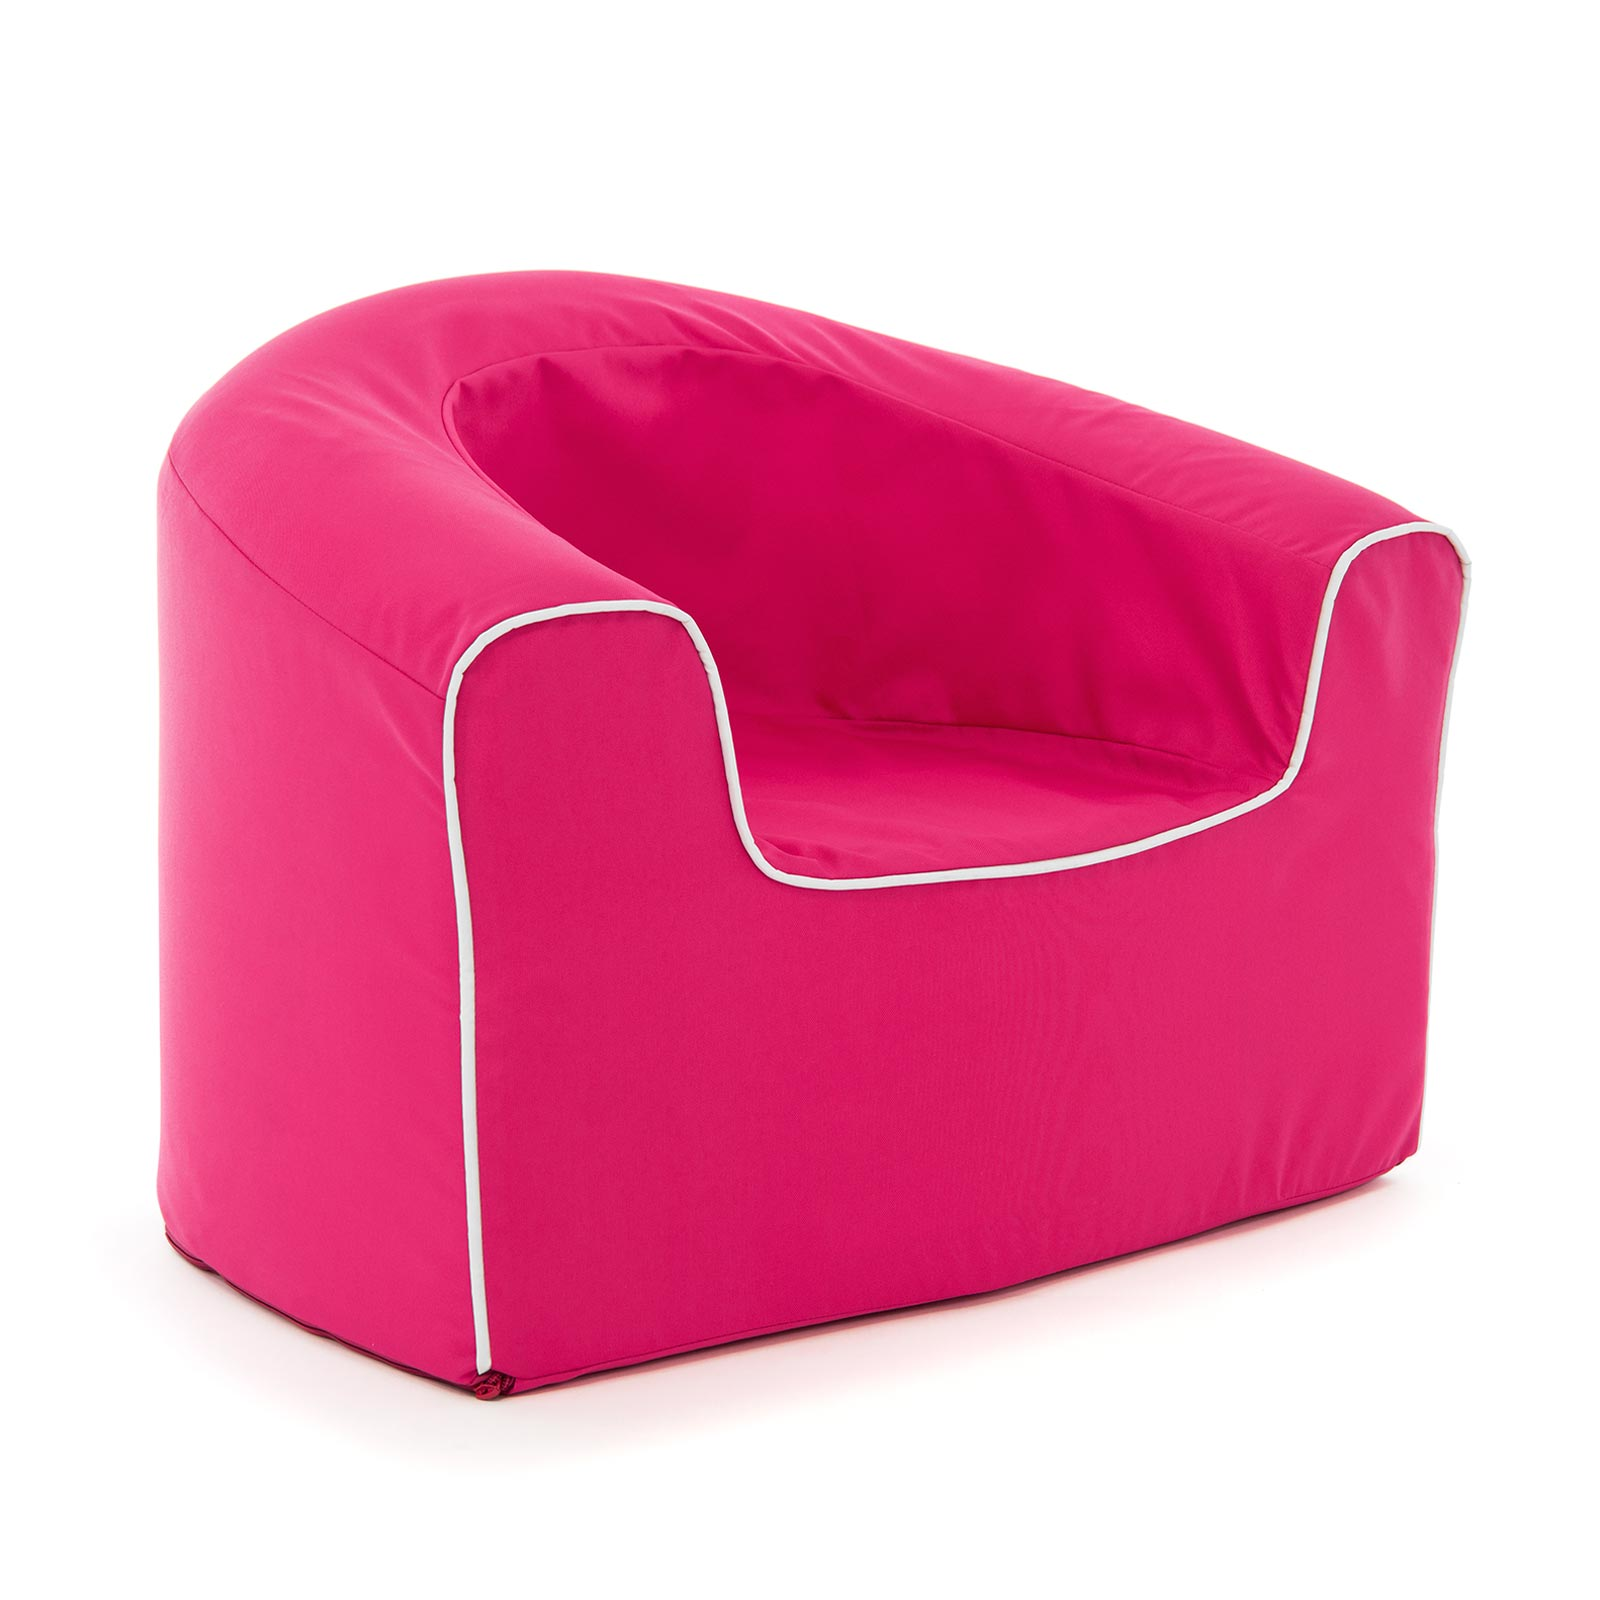 Oblique view of the kids raspberry pop armchair foam seating